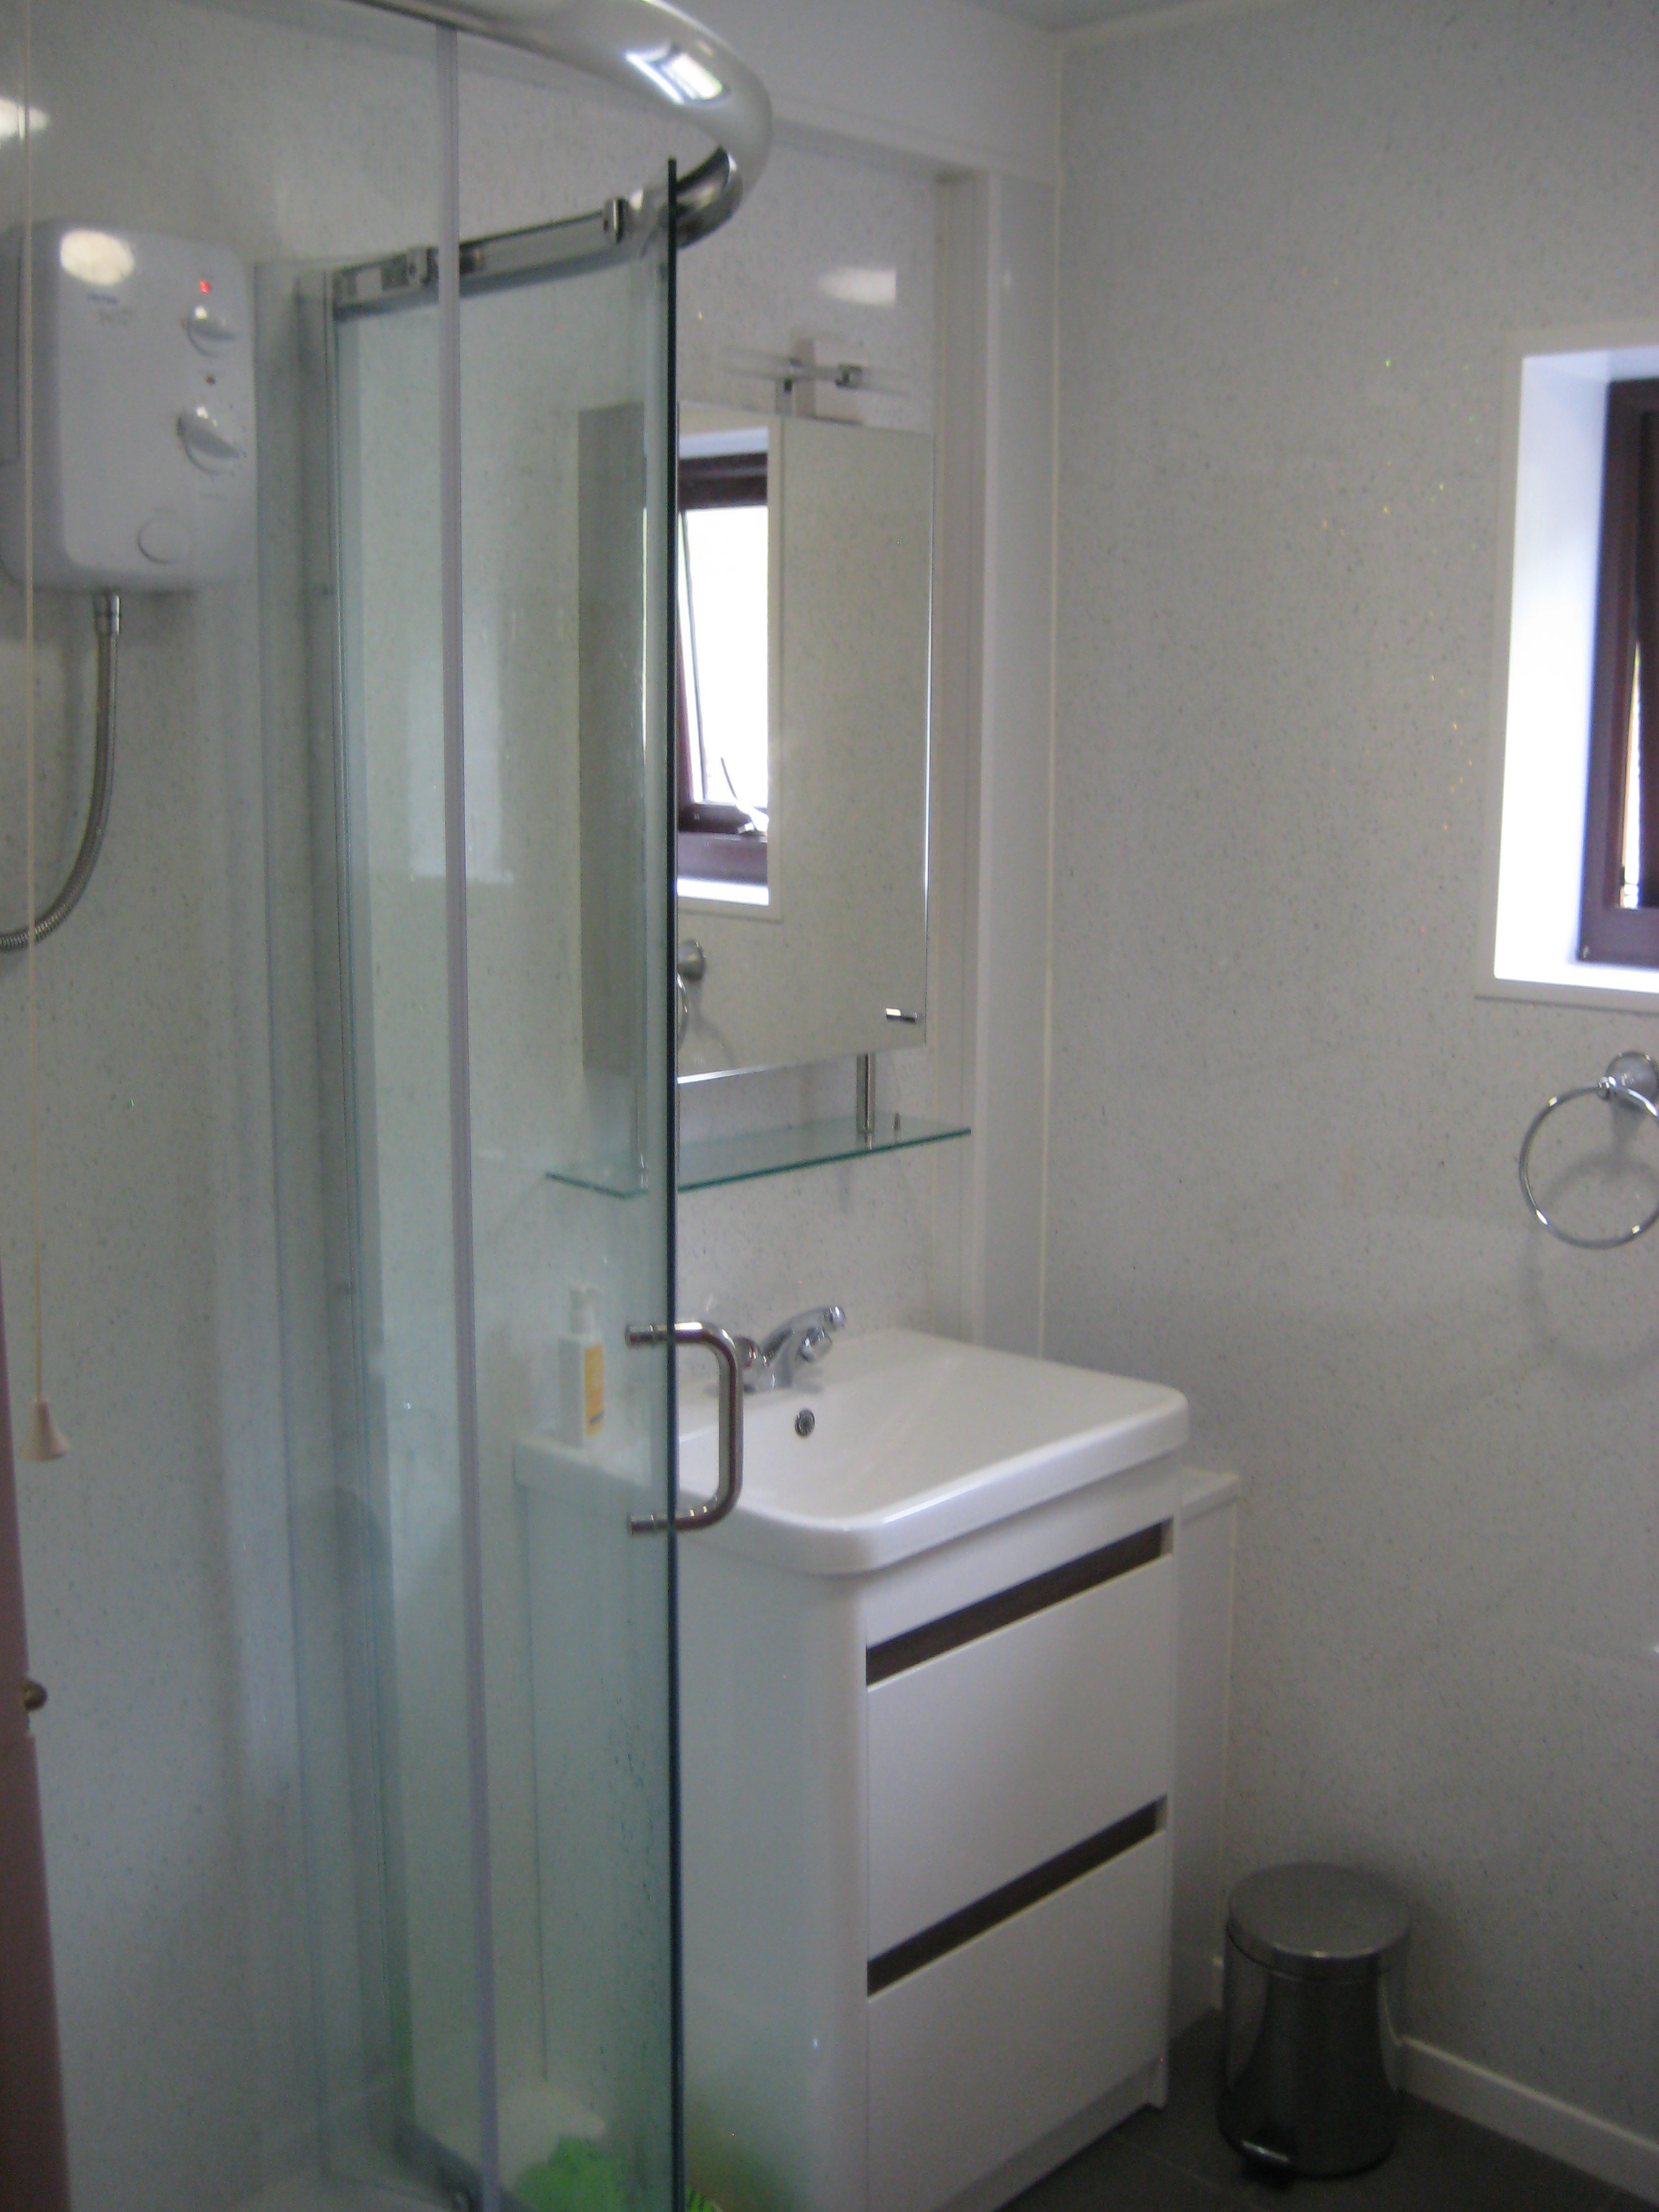 Show and basin in bathroom